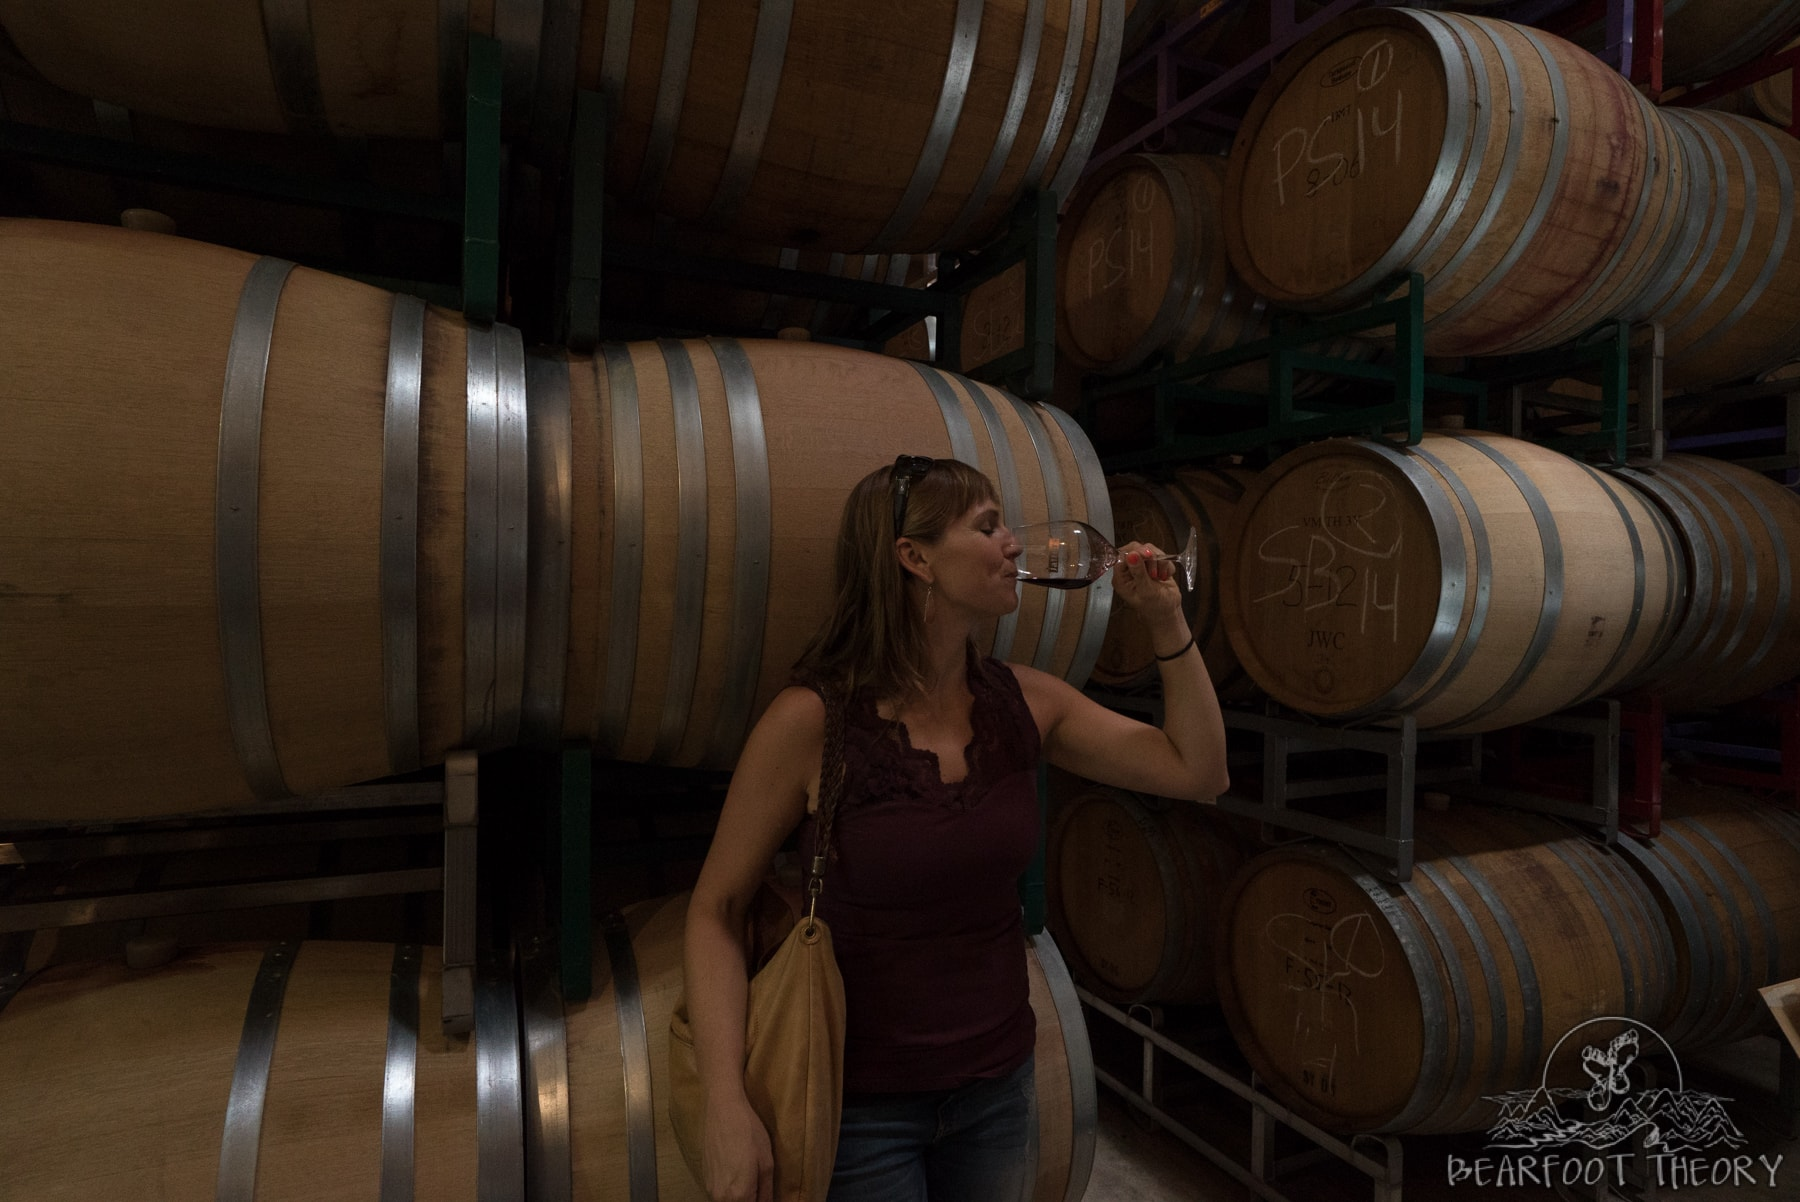 Jaffurs Winery - One of the best stops on the Santa Barbara wine trail